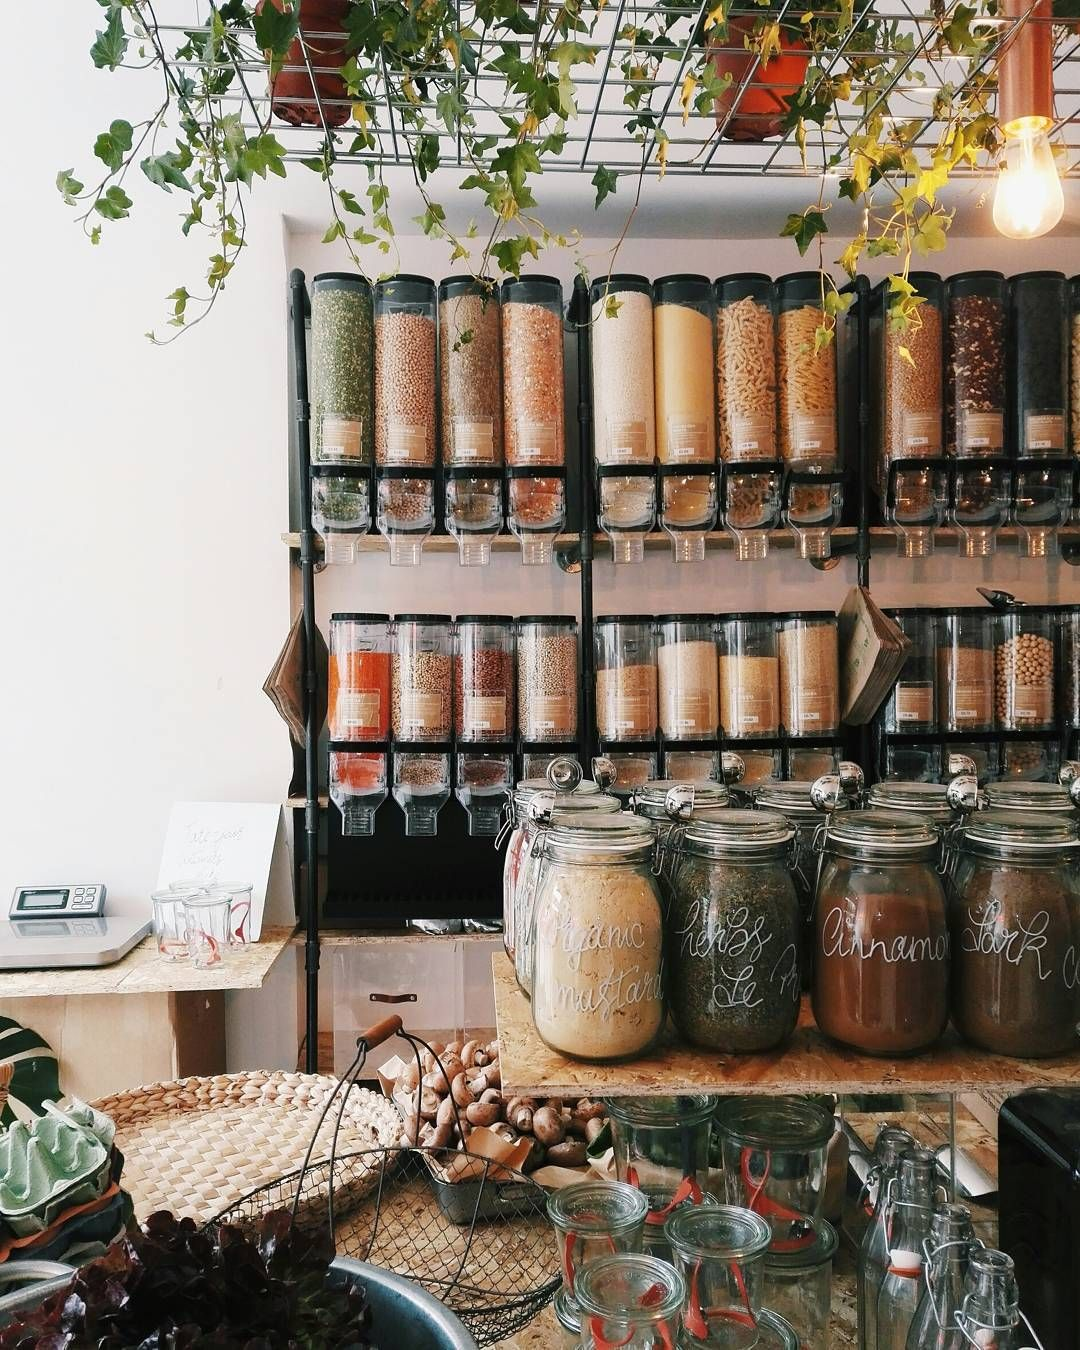 Say goodbye to plastic wrapping, containers, tins and boxes. There's a new way to buy your groceries in London.